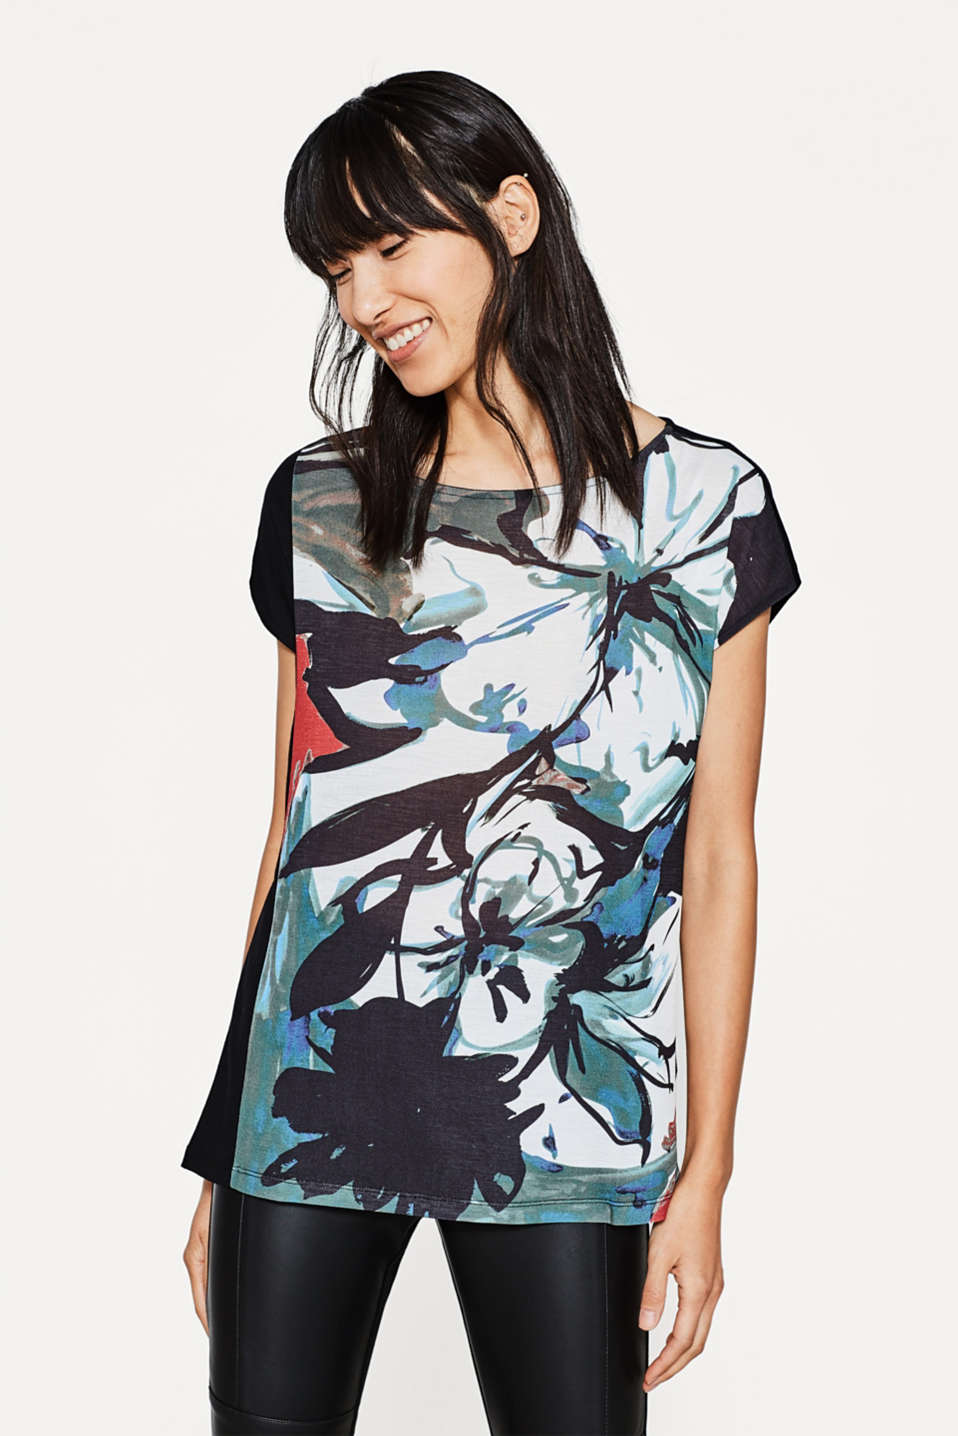 Esprit - Printed top in flowing blended fabric